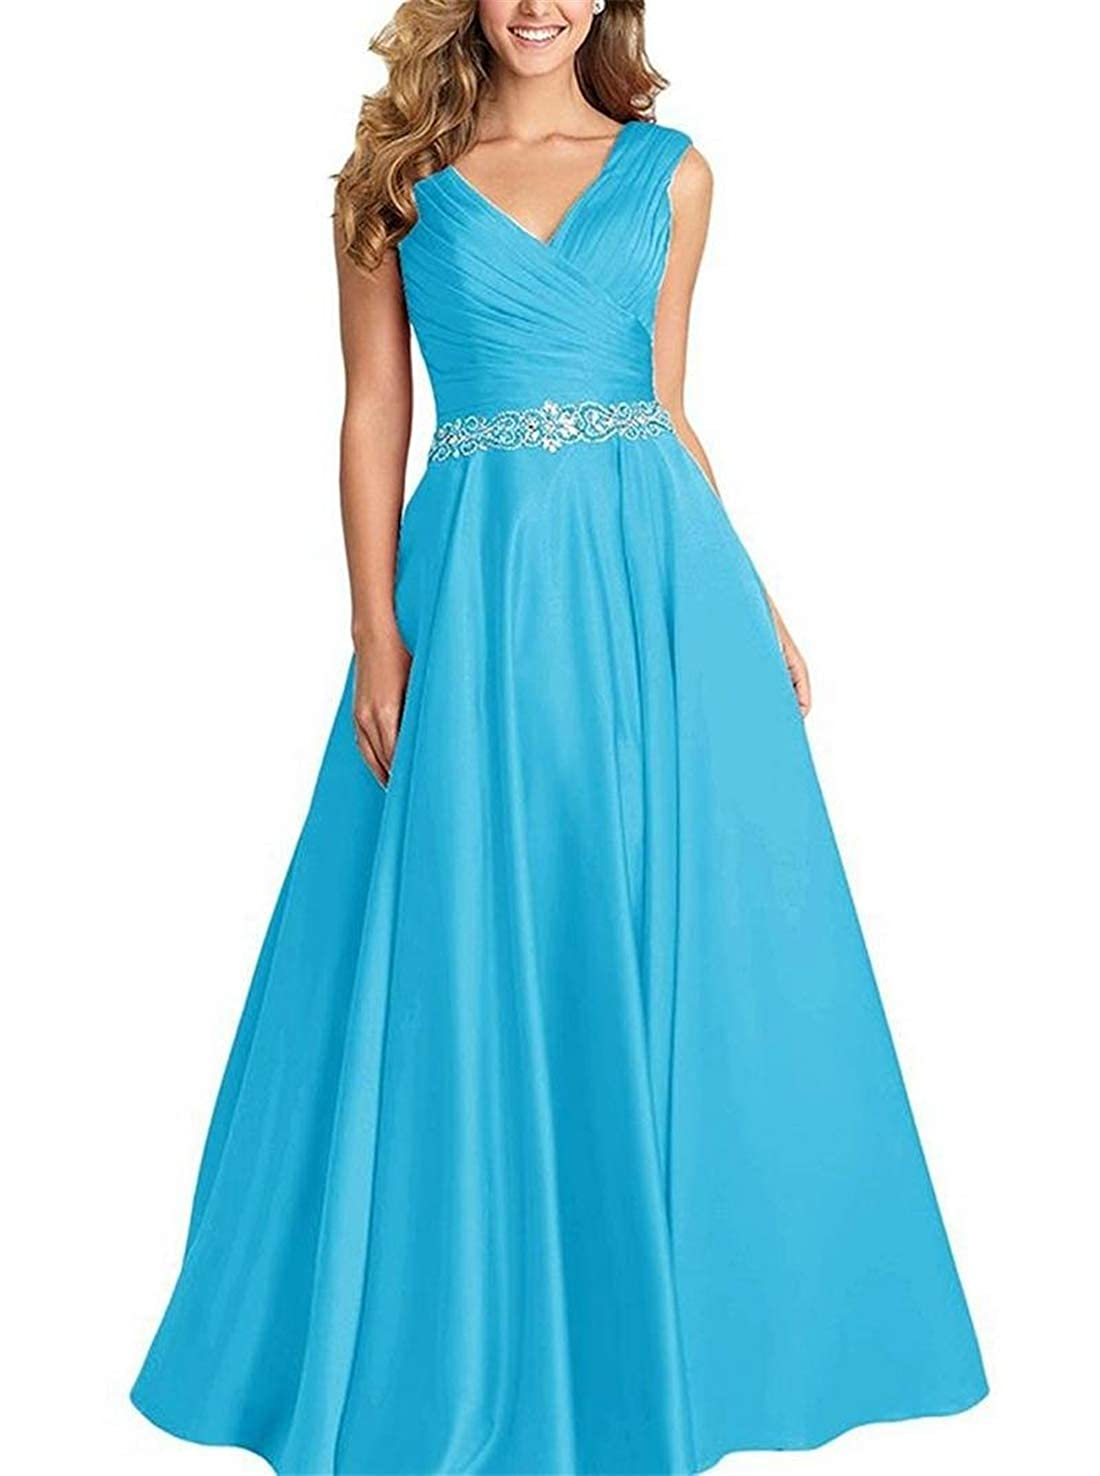 Turquoise Stylefun Womens Long Beaded Prom Dress A Line VNeck Party Evening Gowns XIN004